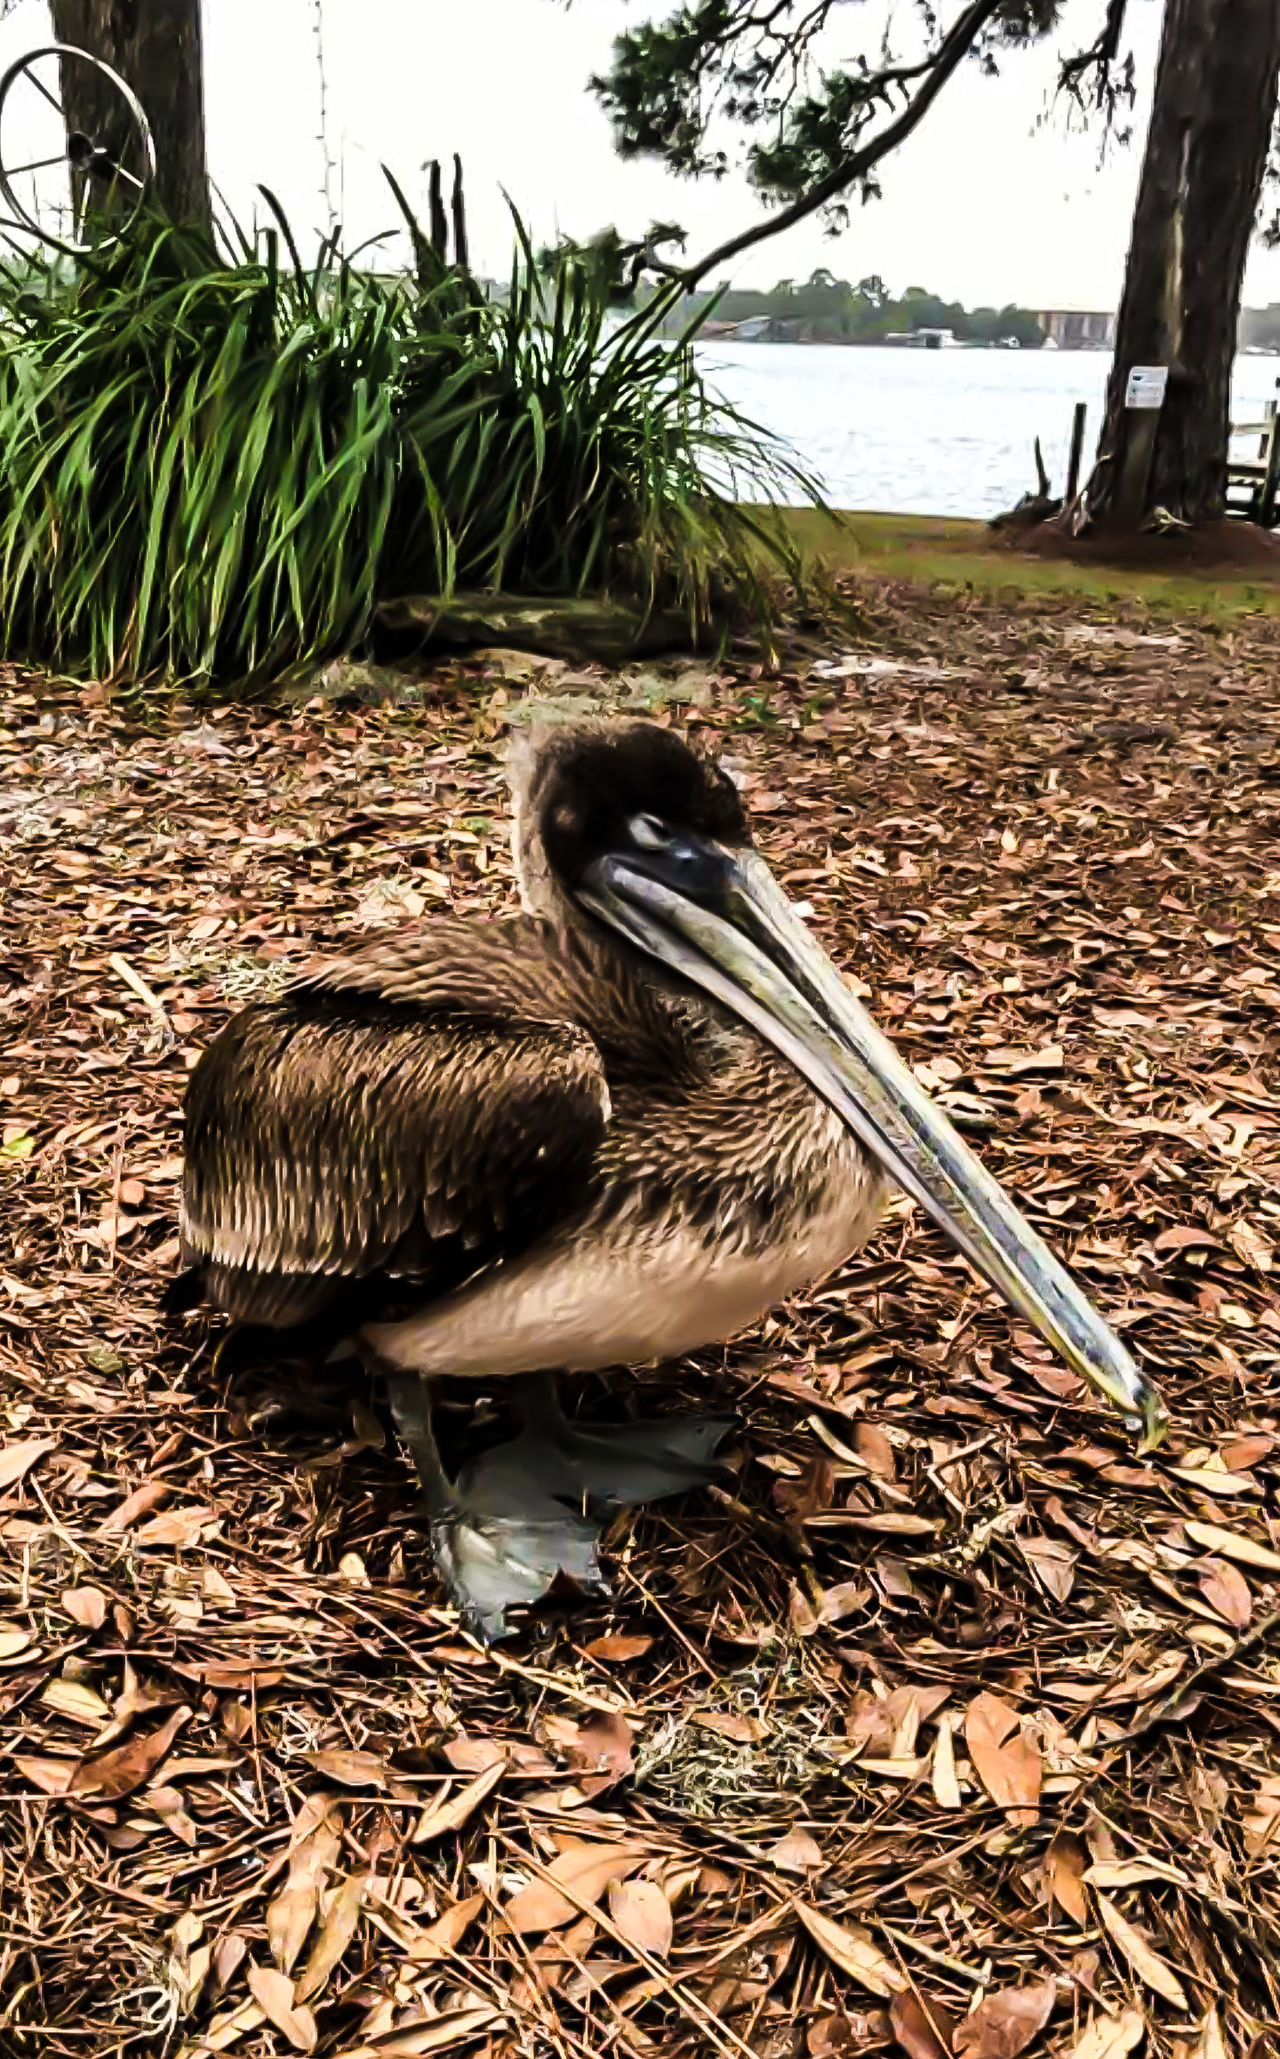 Pelican Bird Bird Photography Sea Bird Birds Of EyeEm  NatureBird Collection Nature Photography Outdoor Photography Animals Animal Photography Long Beak Bird Sitting Bird Sitting On Grass Ocean In Background Water Bird Eyeem Photo